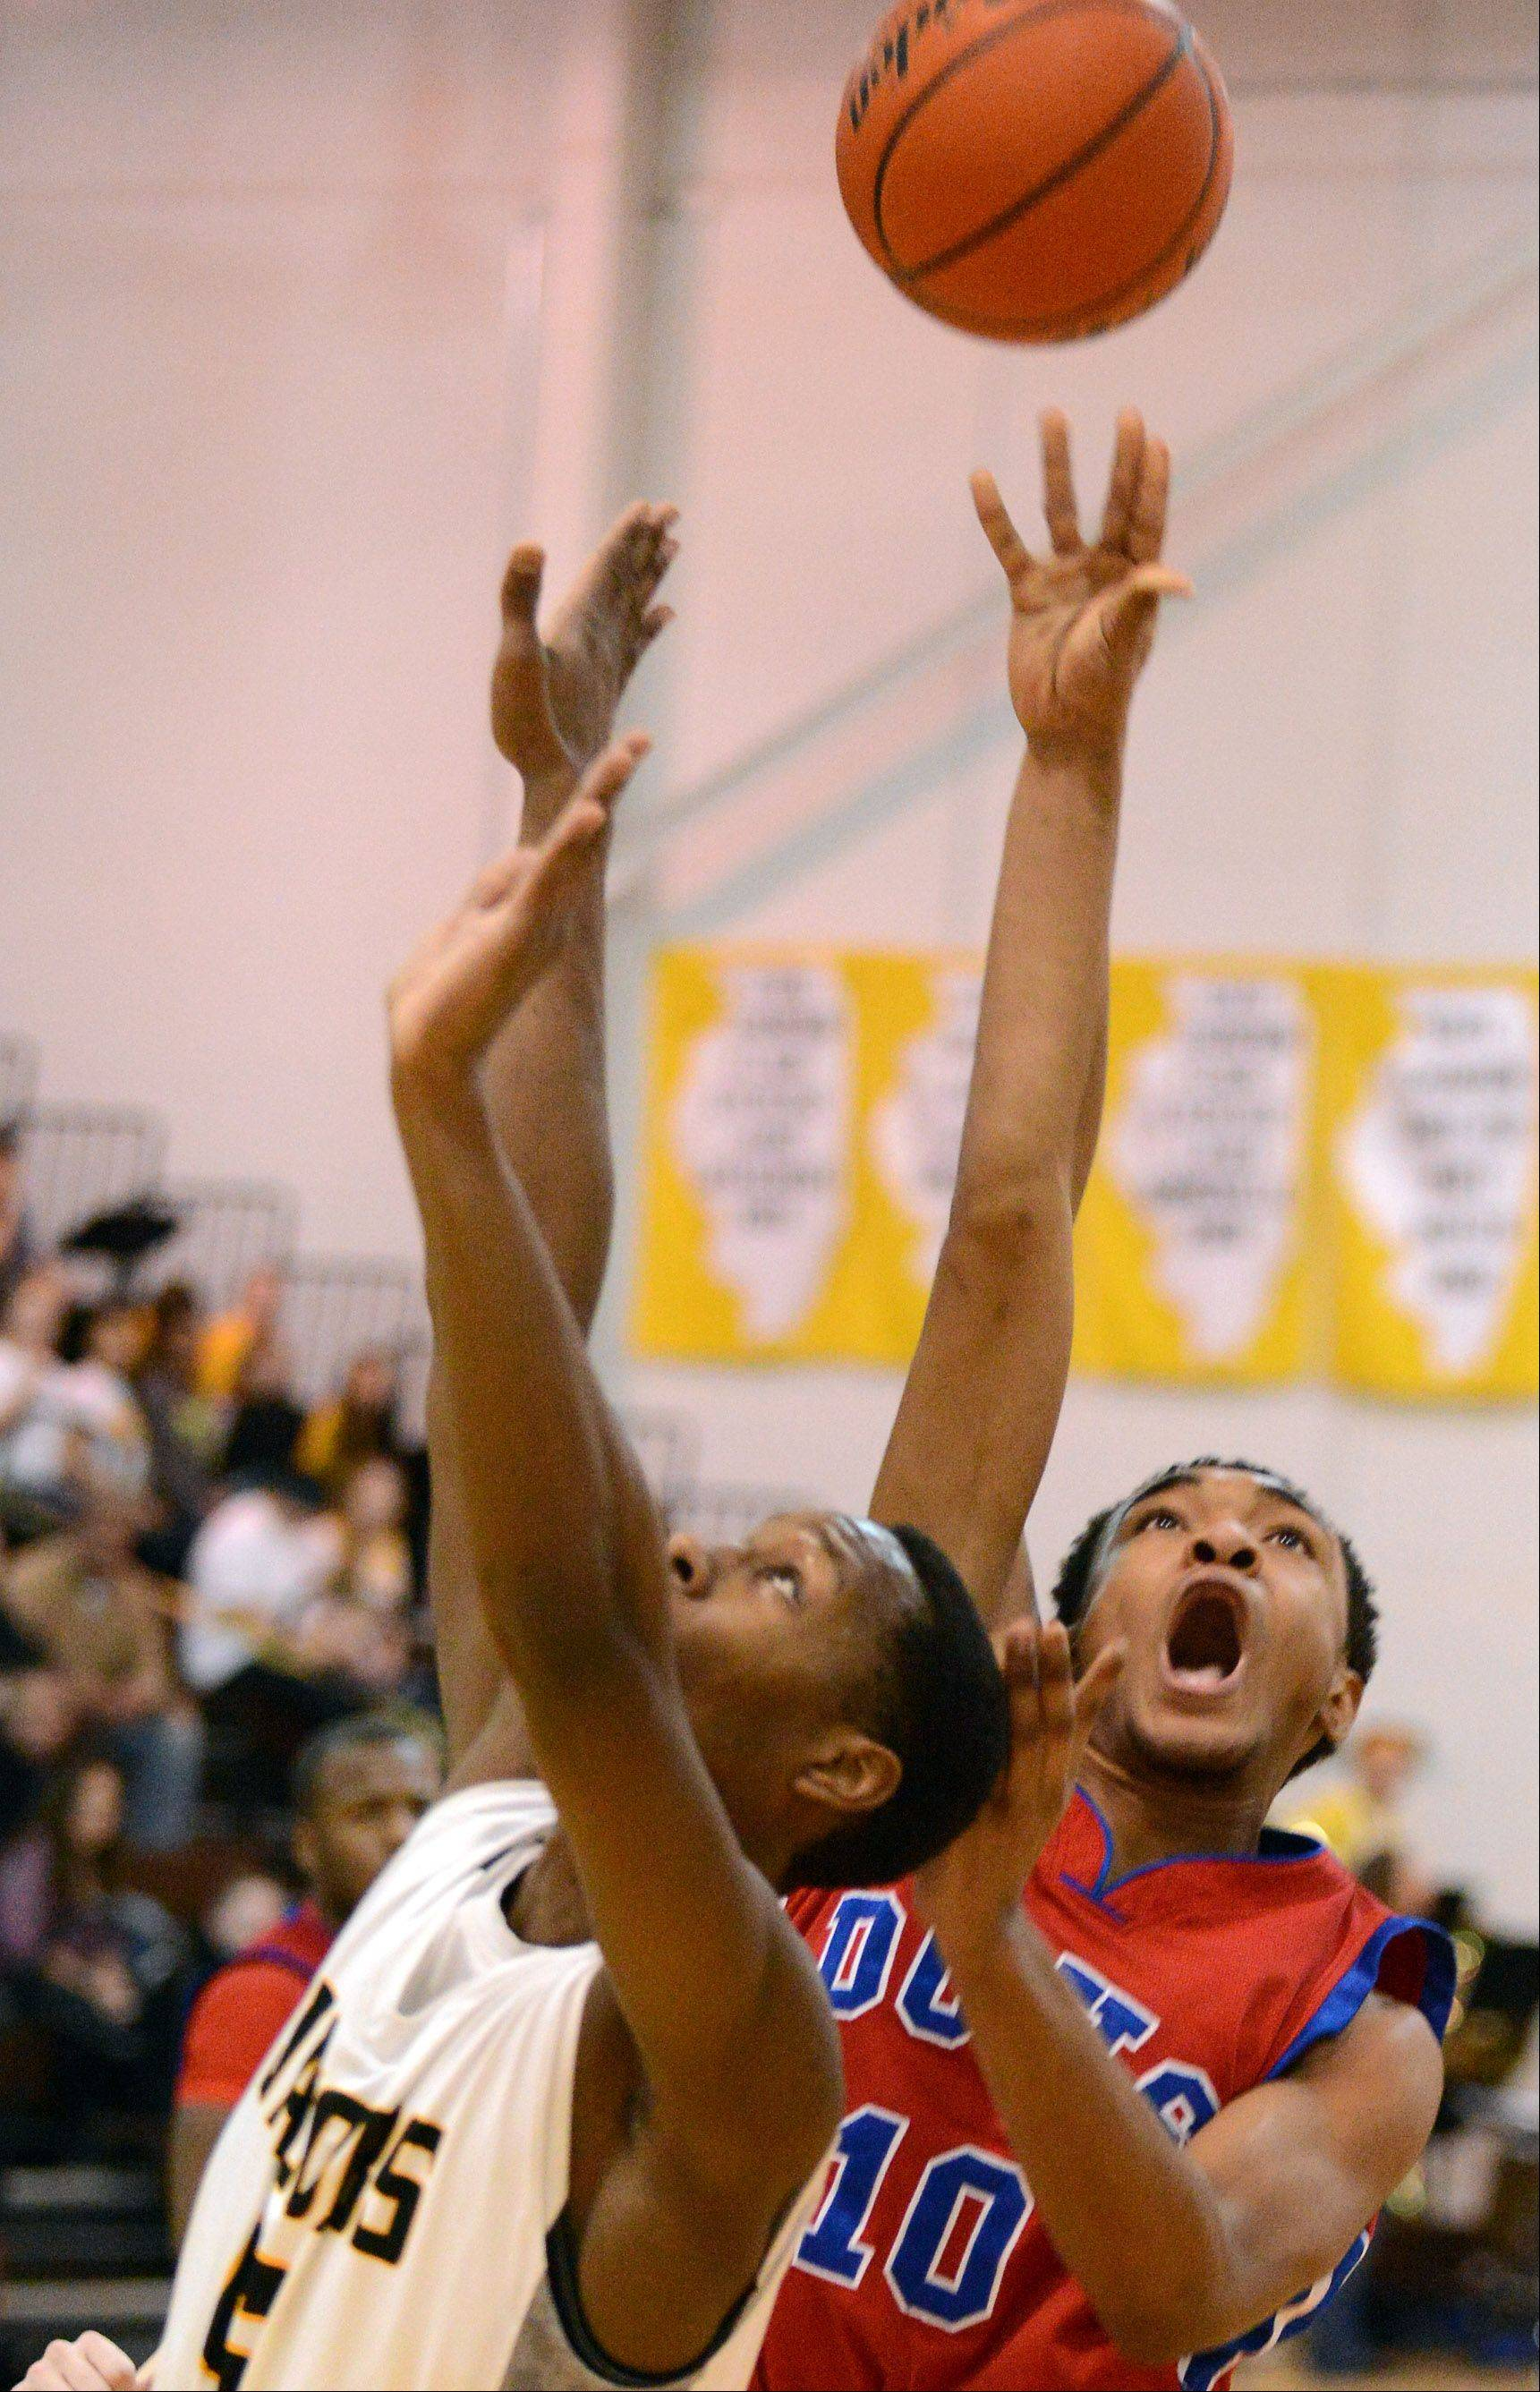 Dundee-Crown's Kiwaun Seals puts up a shot against Jacobs during Wednesday's game in Algonquin.